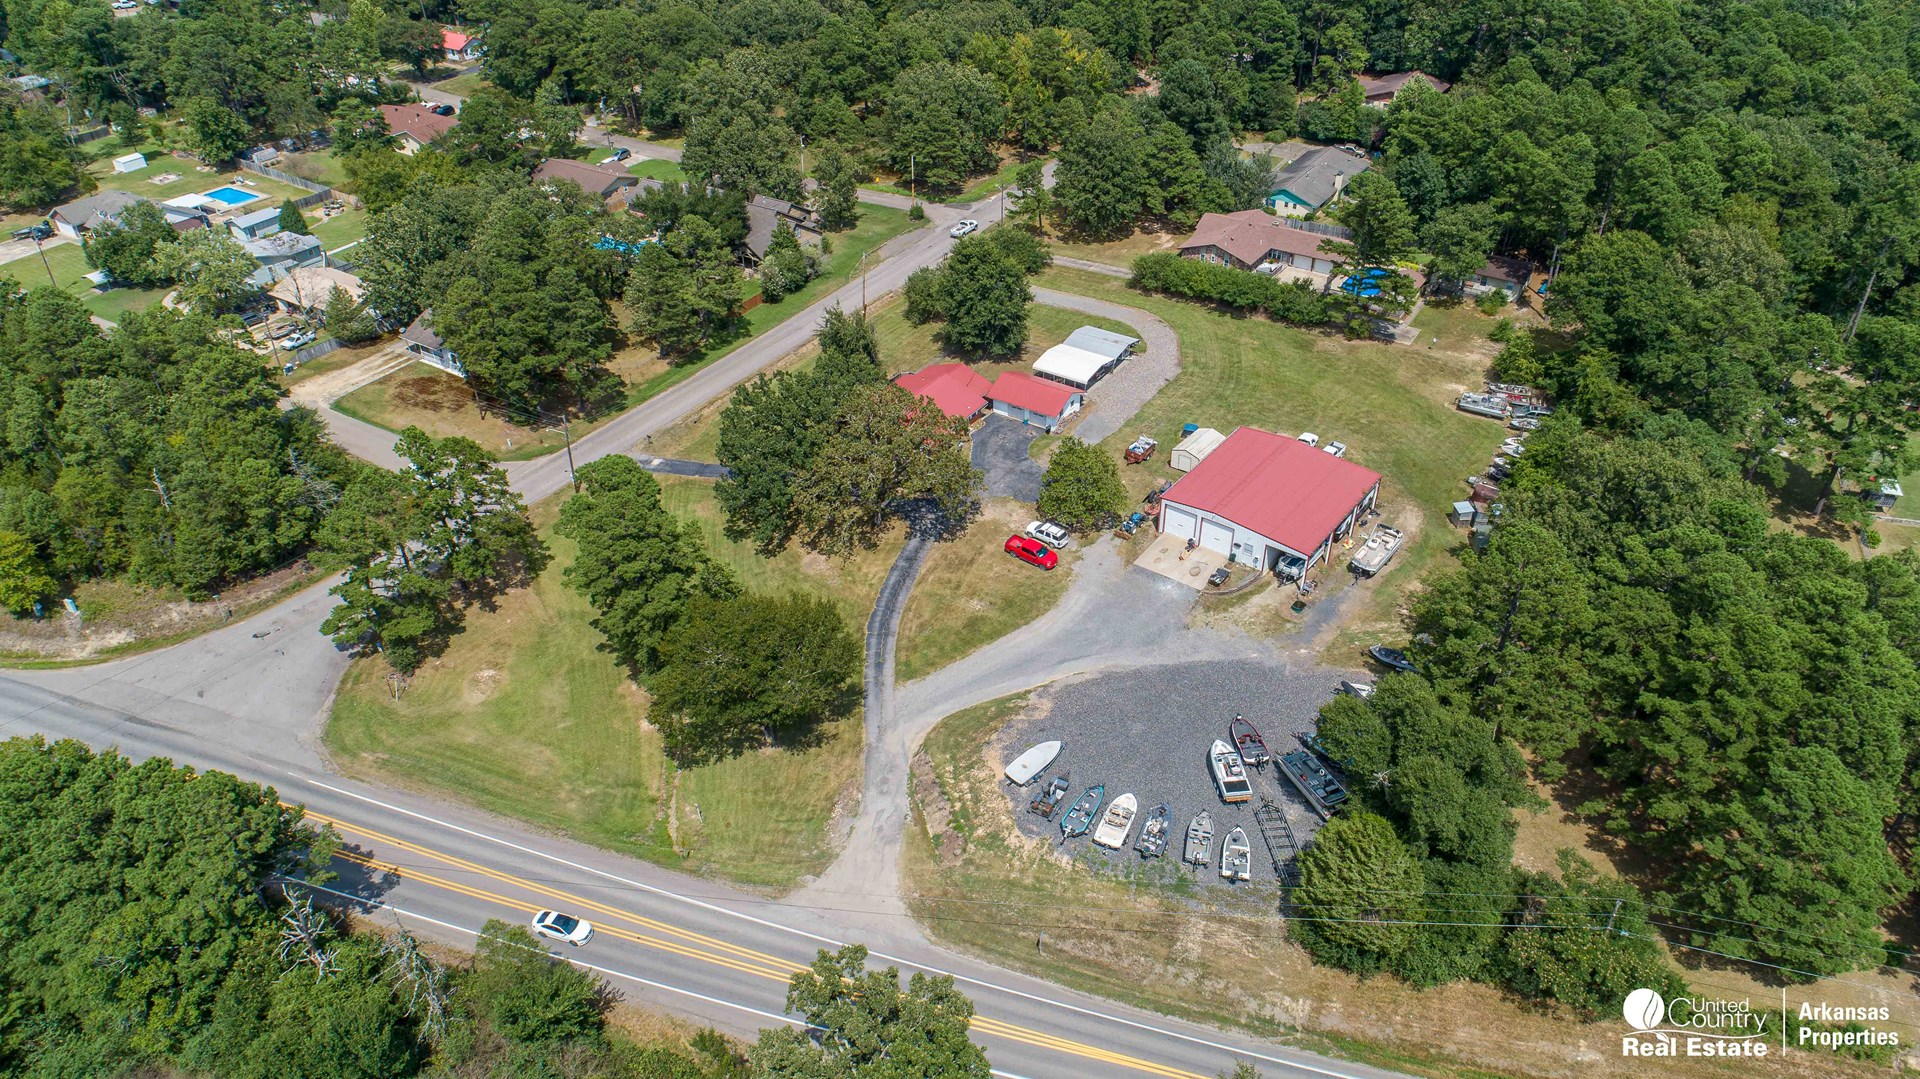 Residential/Commercial Property for sale in Mena Arkansas